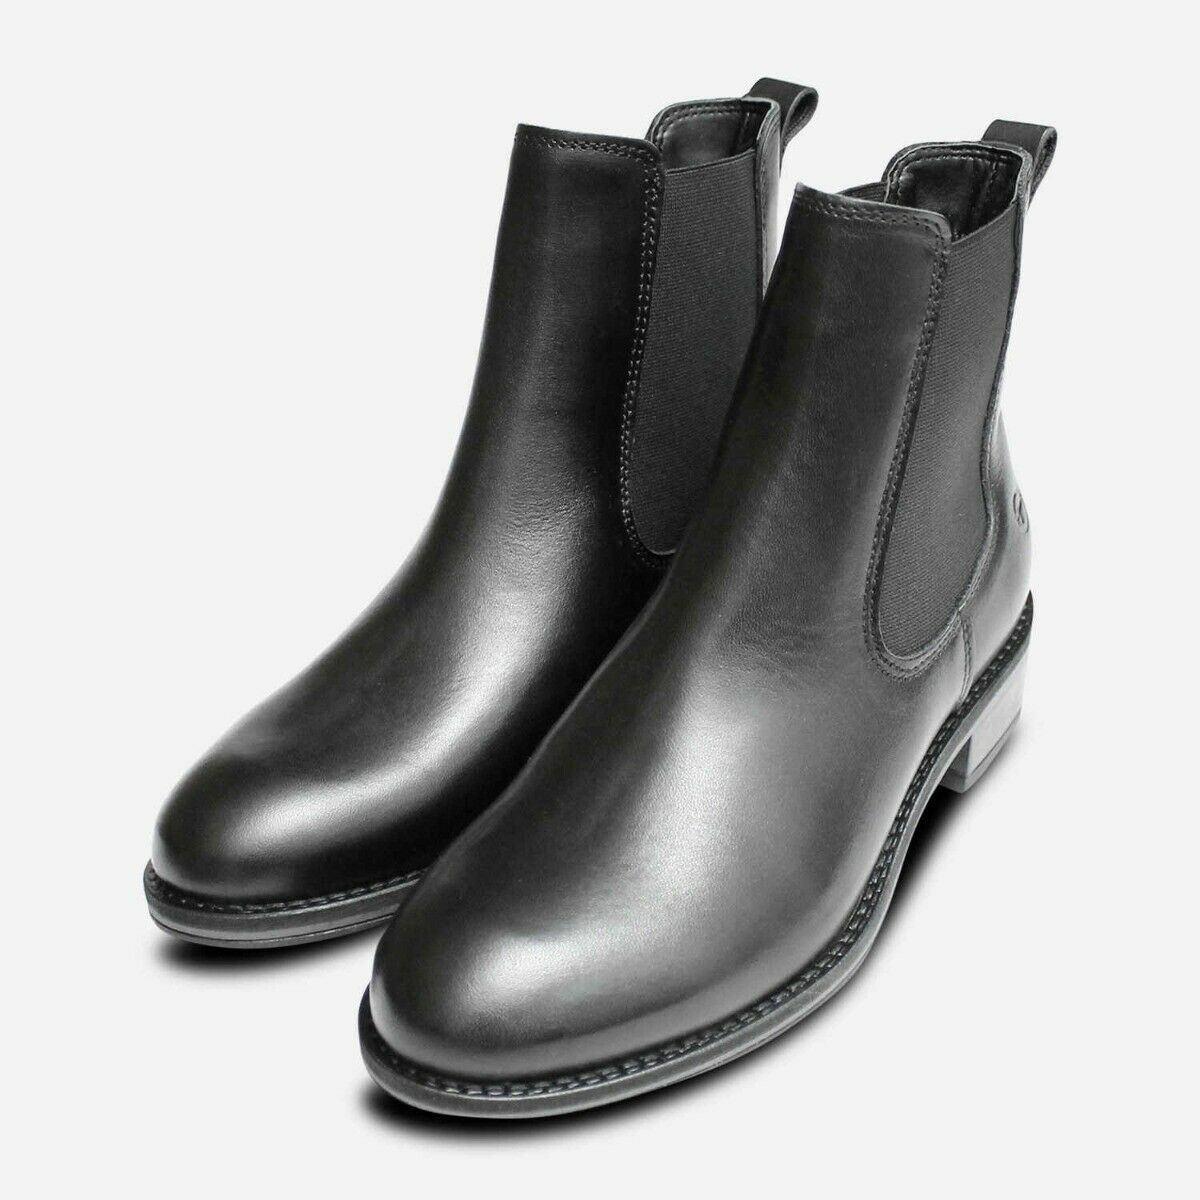 Black Leather Tamaris Ankle Chelsea Boots for Women